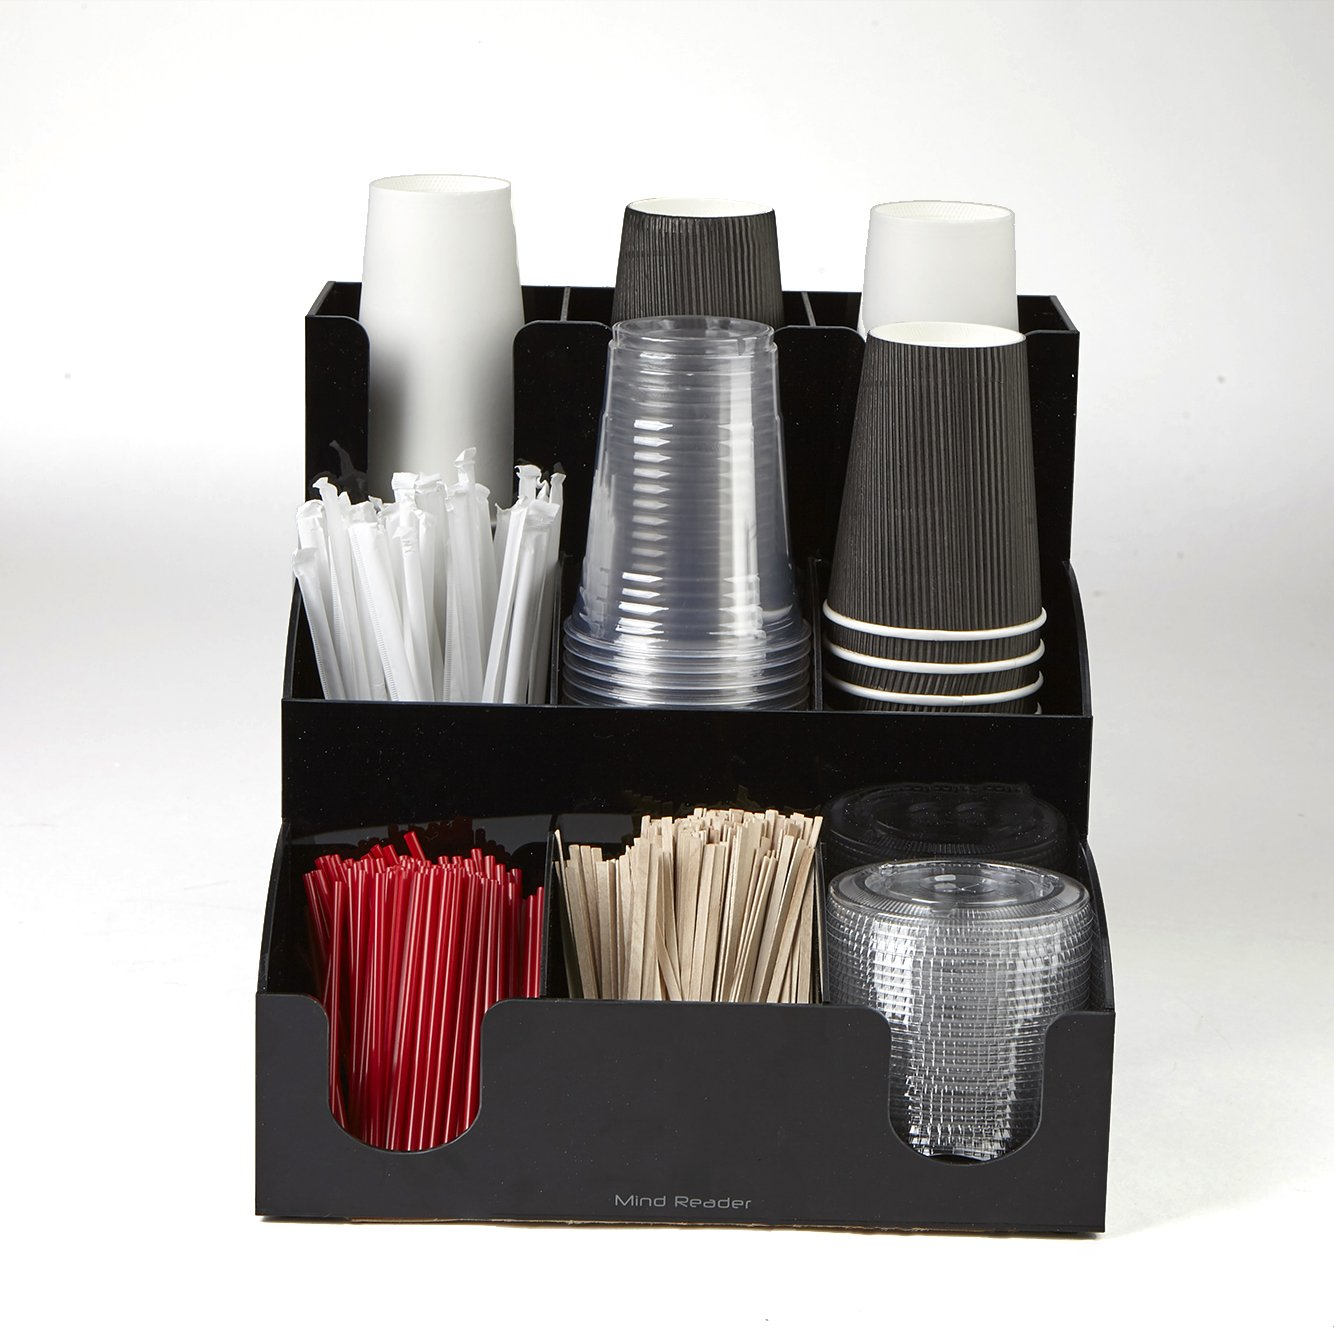 Mind Reader 9 Compartment Coffee Condiment and Accessories Organizer, Black by Mind Reader (Image #4)